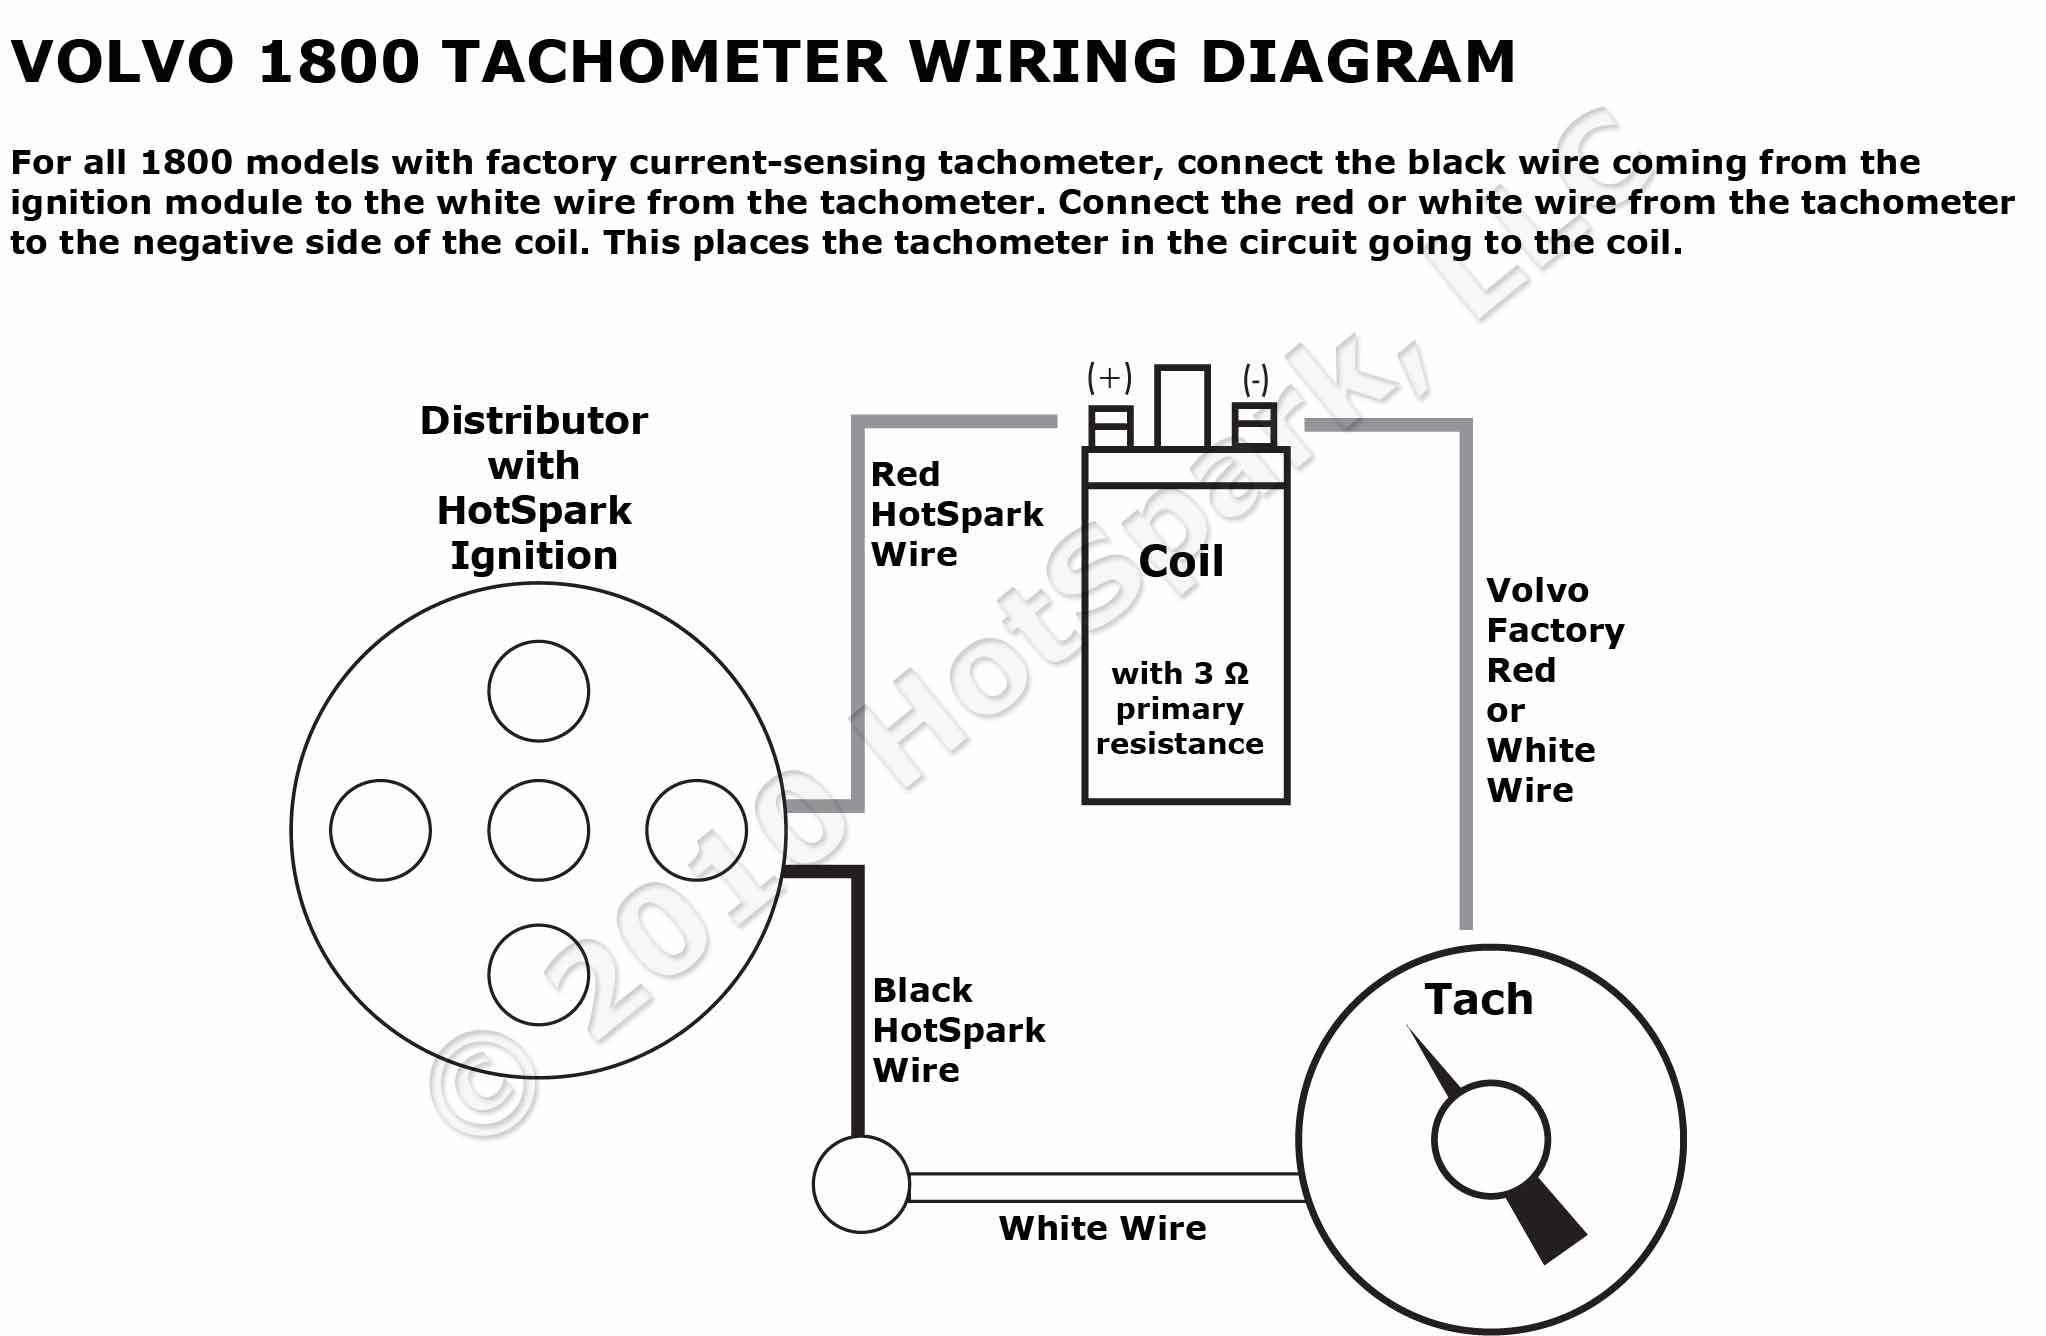 Volvo 1800 Tachometer and Hot Spark Wiring Diagram tach wiring diagram autometer tach wiring diagram \u2022 wiring motorcycle tachometer wiring diagram at crackthecode.co